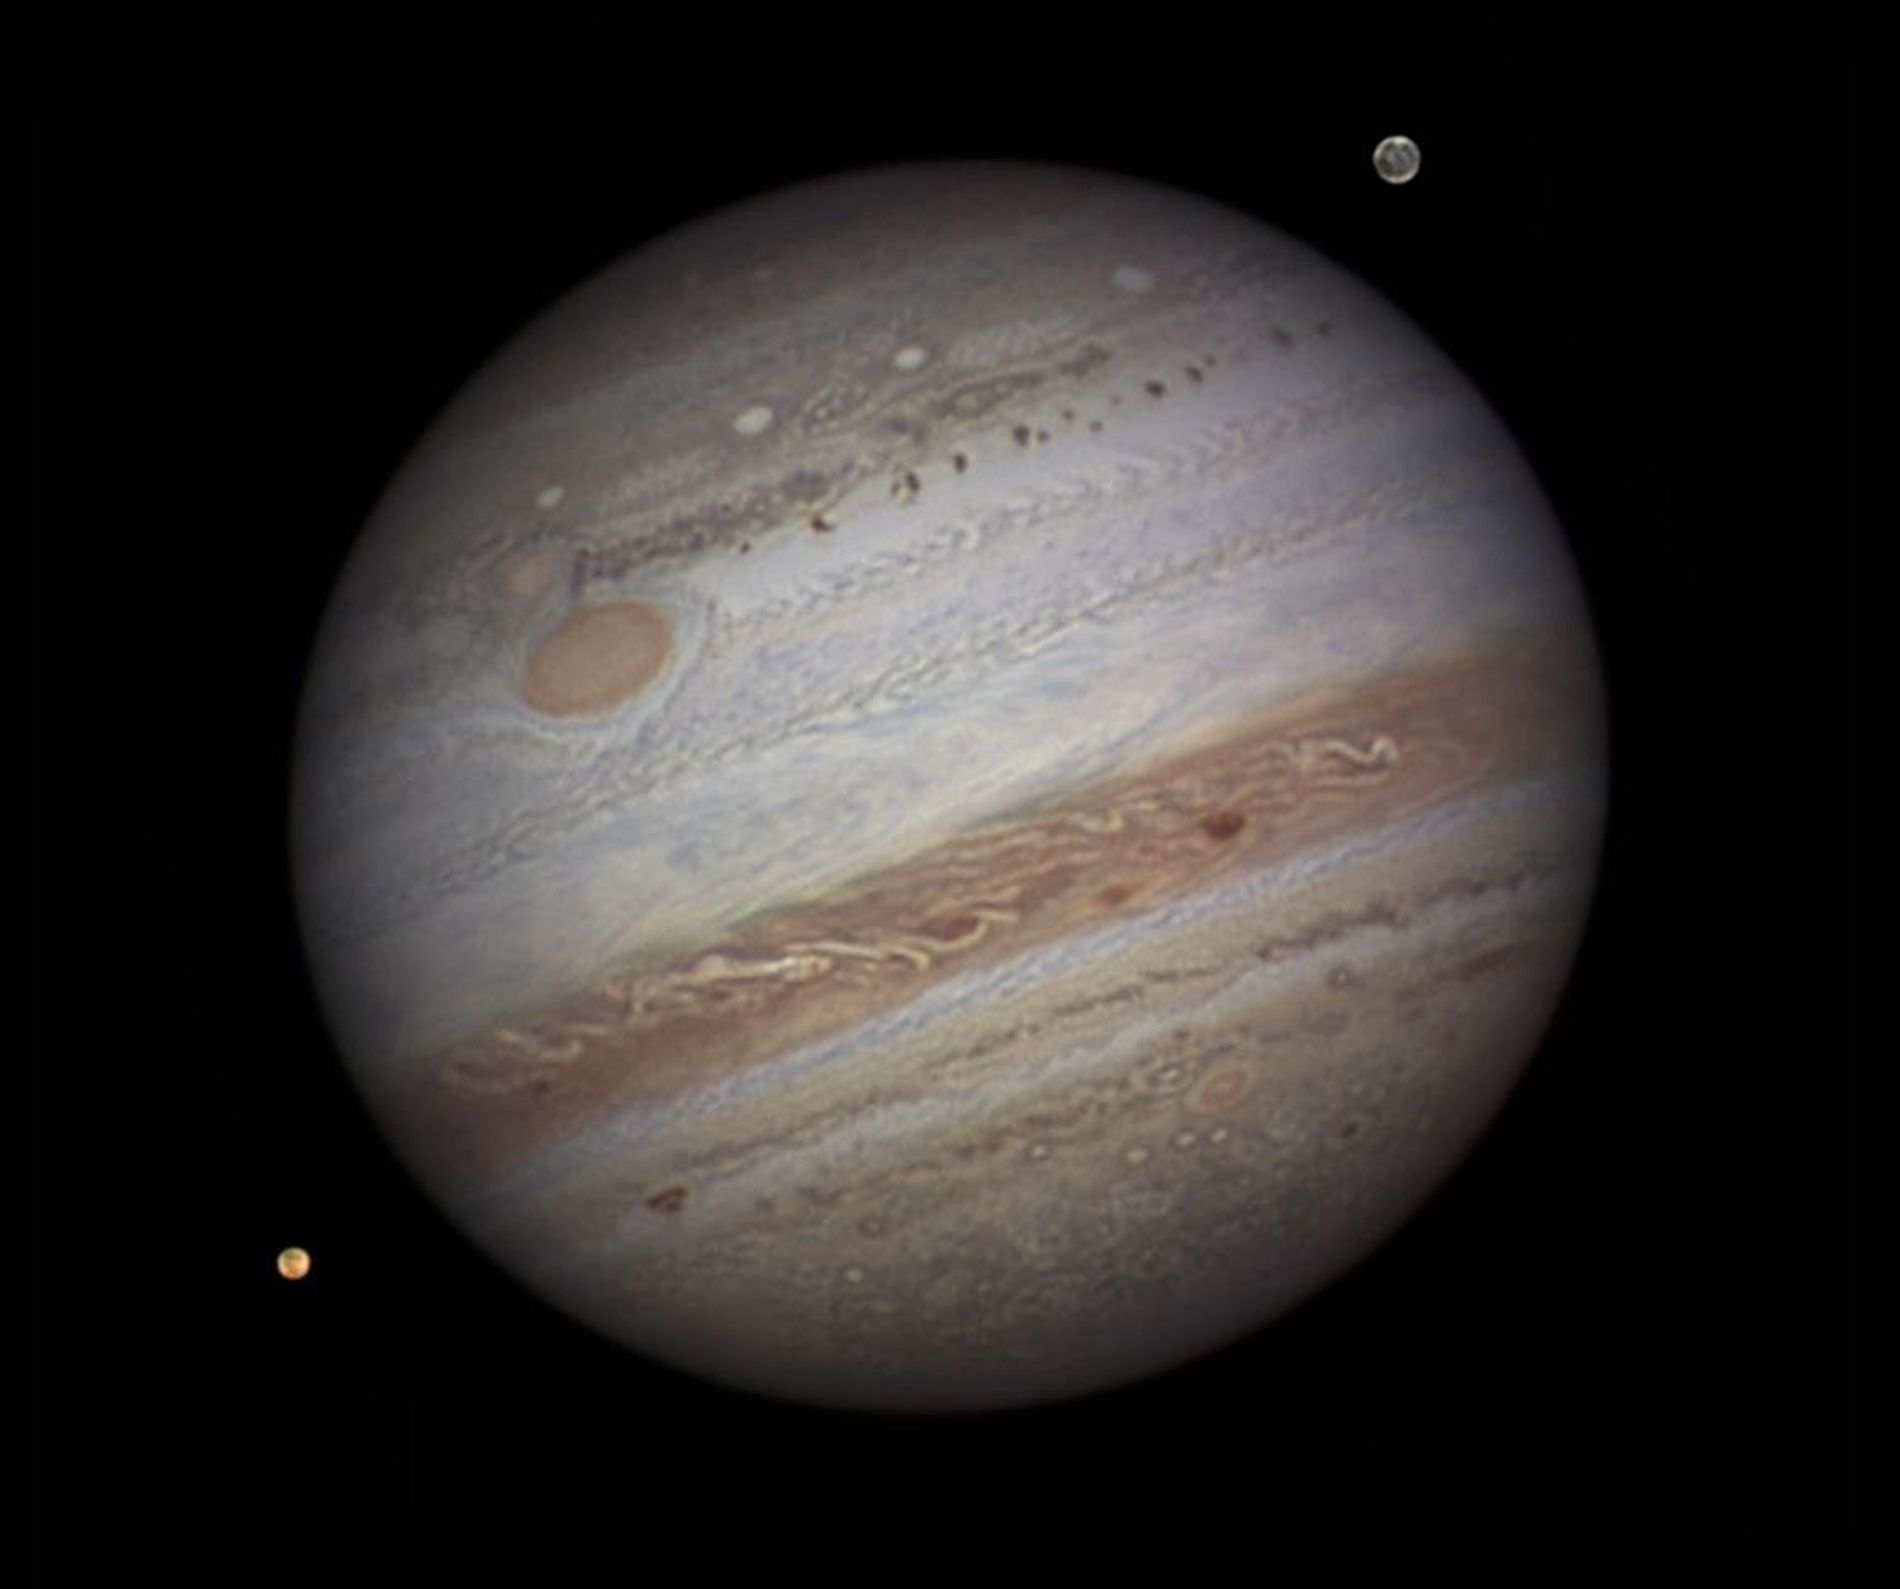 Jupiter will be at opposition in June, which means it will be its biggest and brightest ...